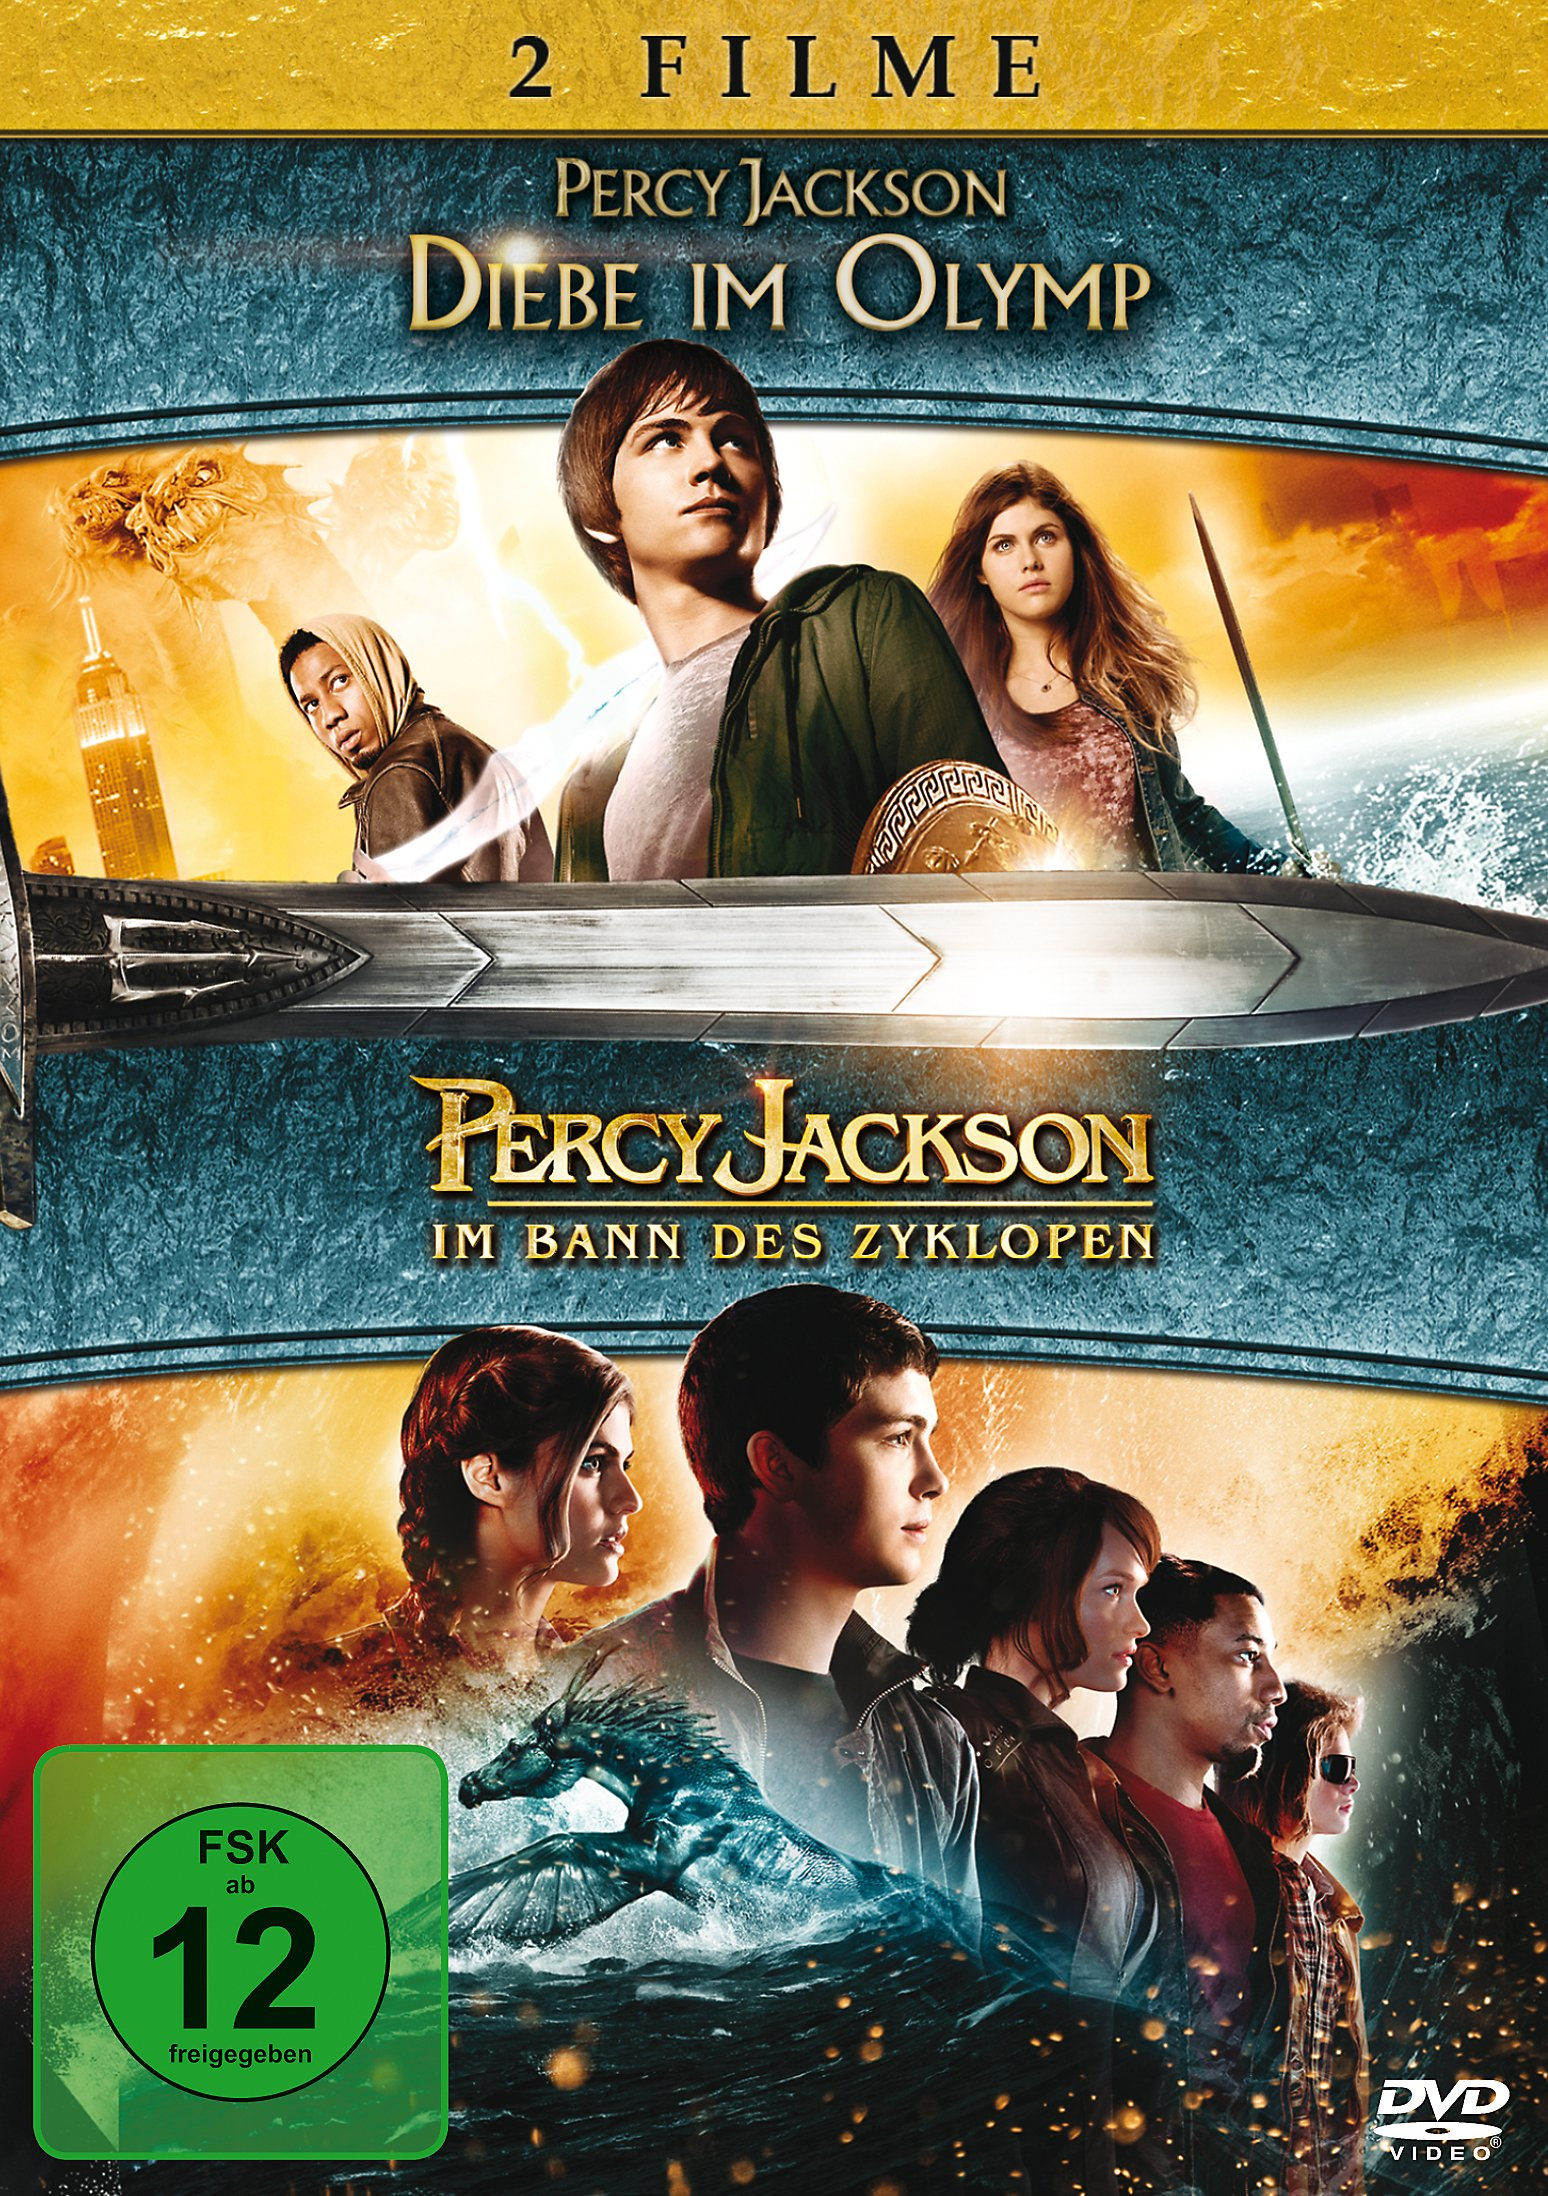 2018 sneakers large discount fast delivery Percy Jackson: Diebe im Olymp & Im Bann des Zyklopen Film ...